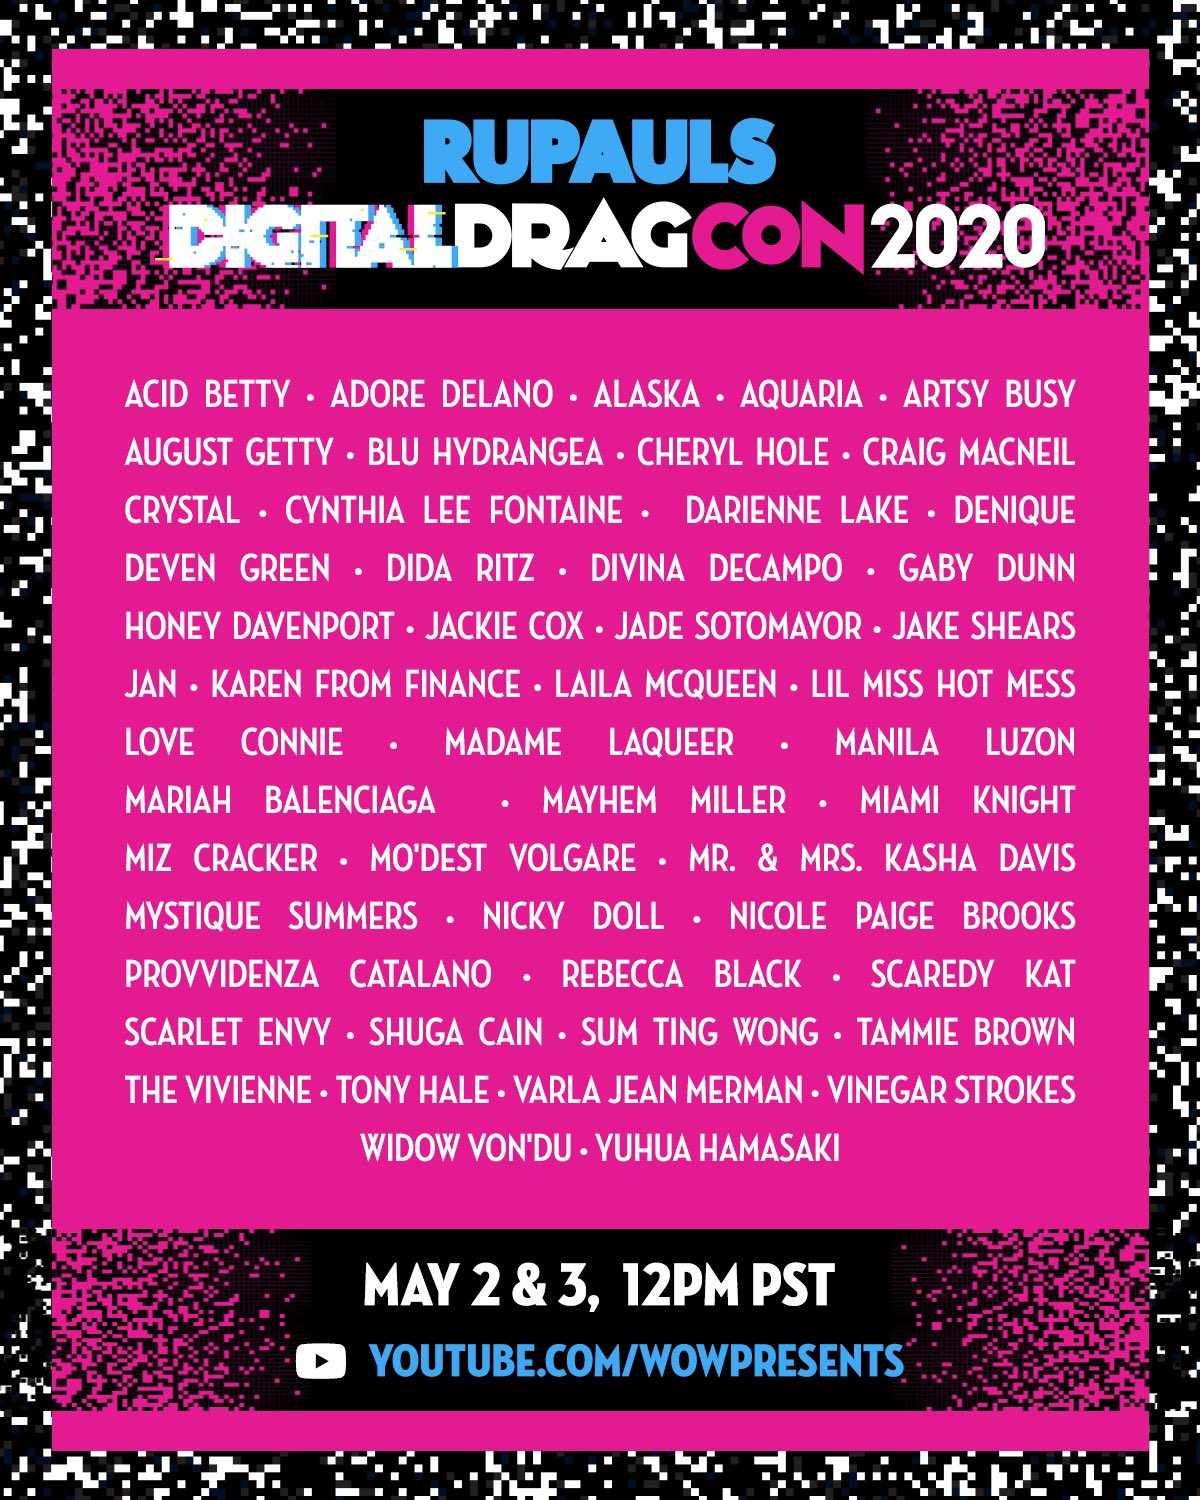 dragcon 2020 digital